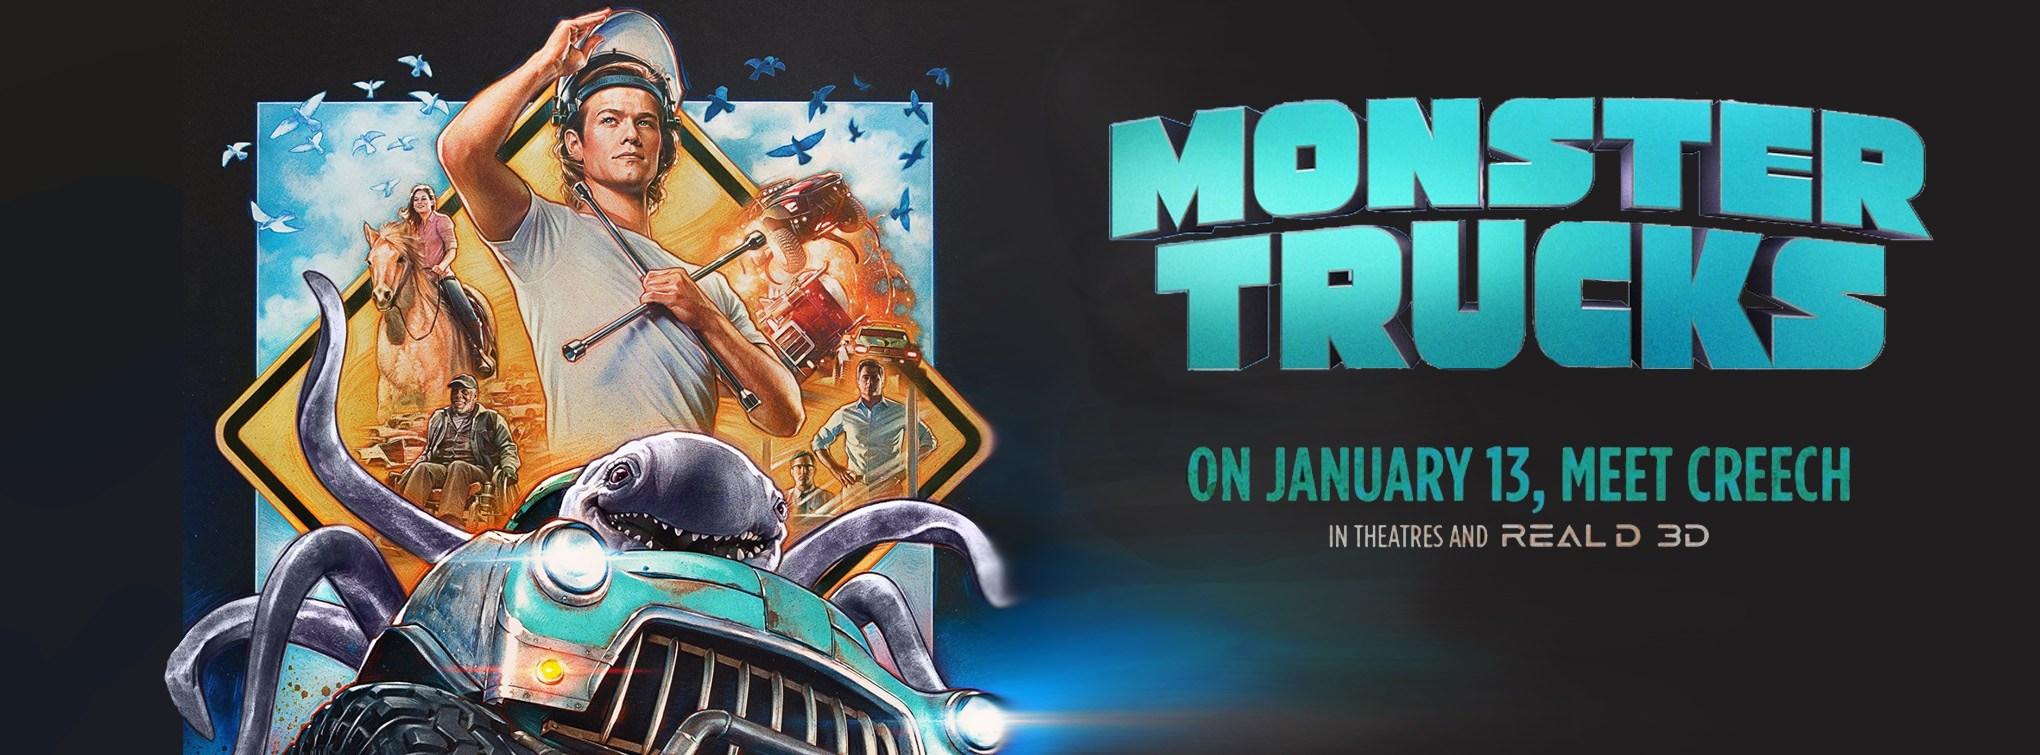 Monster Trucks, now playing!